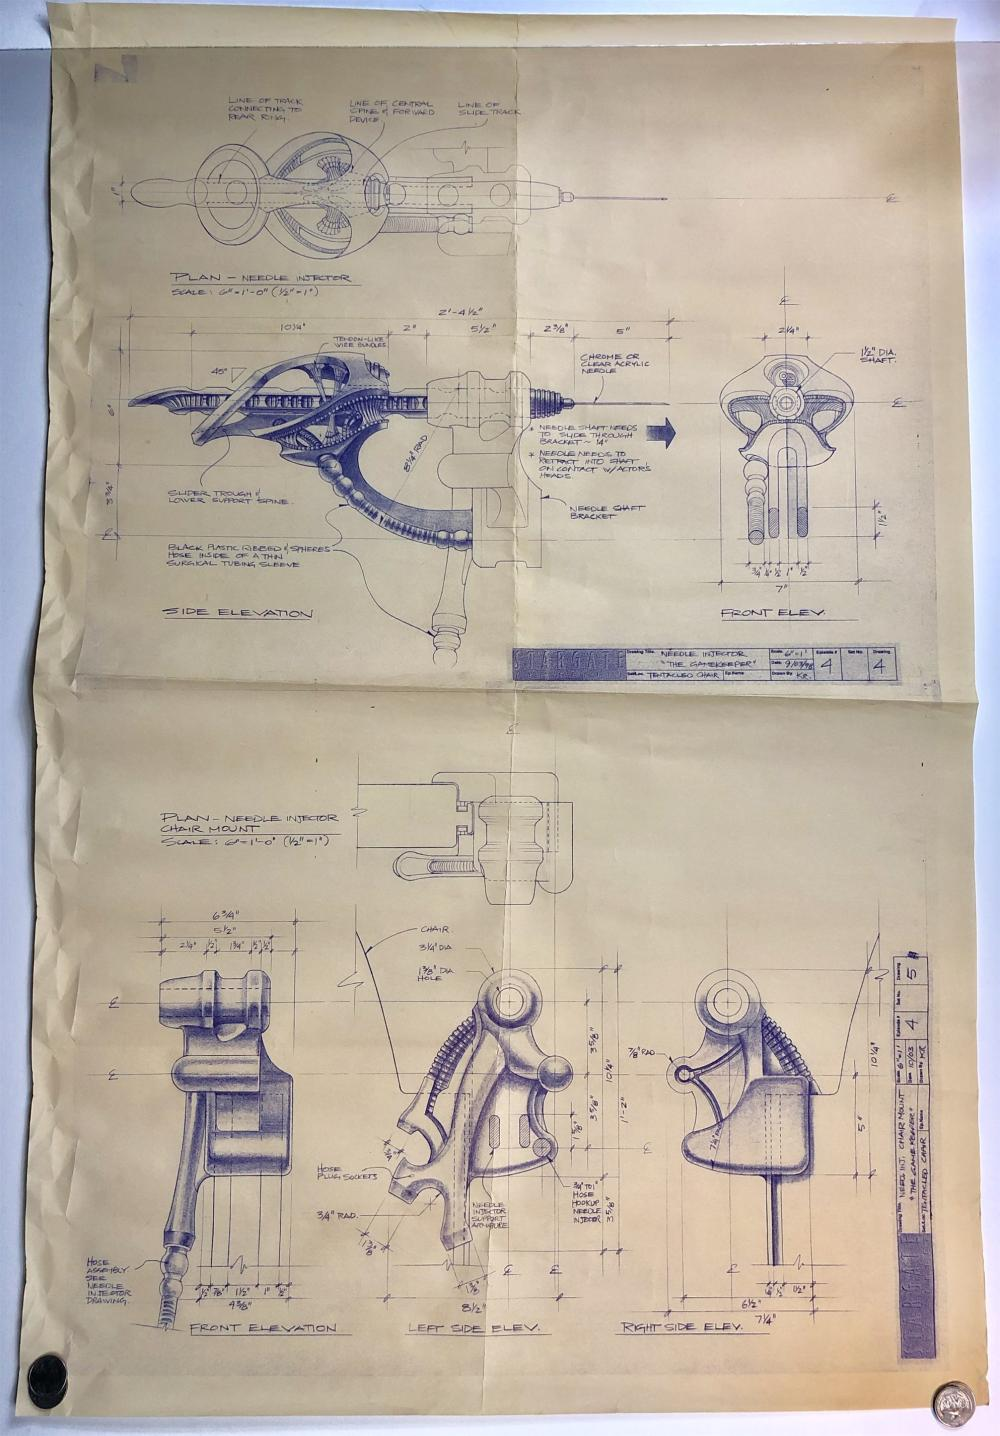 """Stargate SG-1 (1997–2007) - Original Production Blueprint """"Needle Injector"""" from The Gamekeeper"""